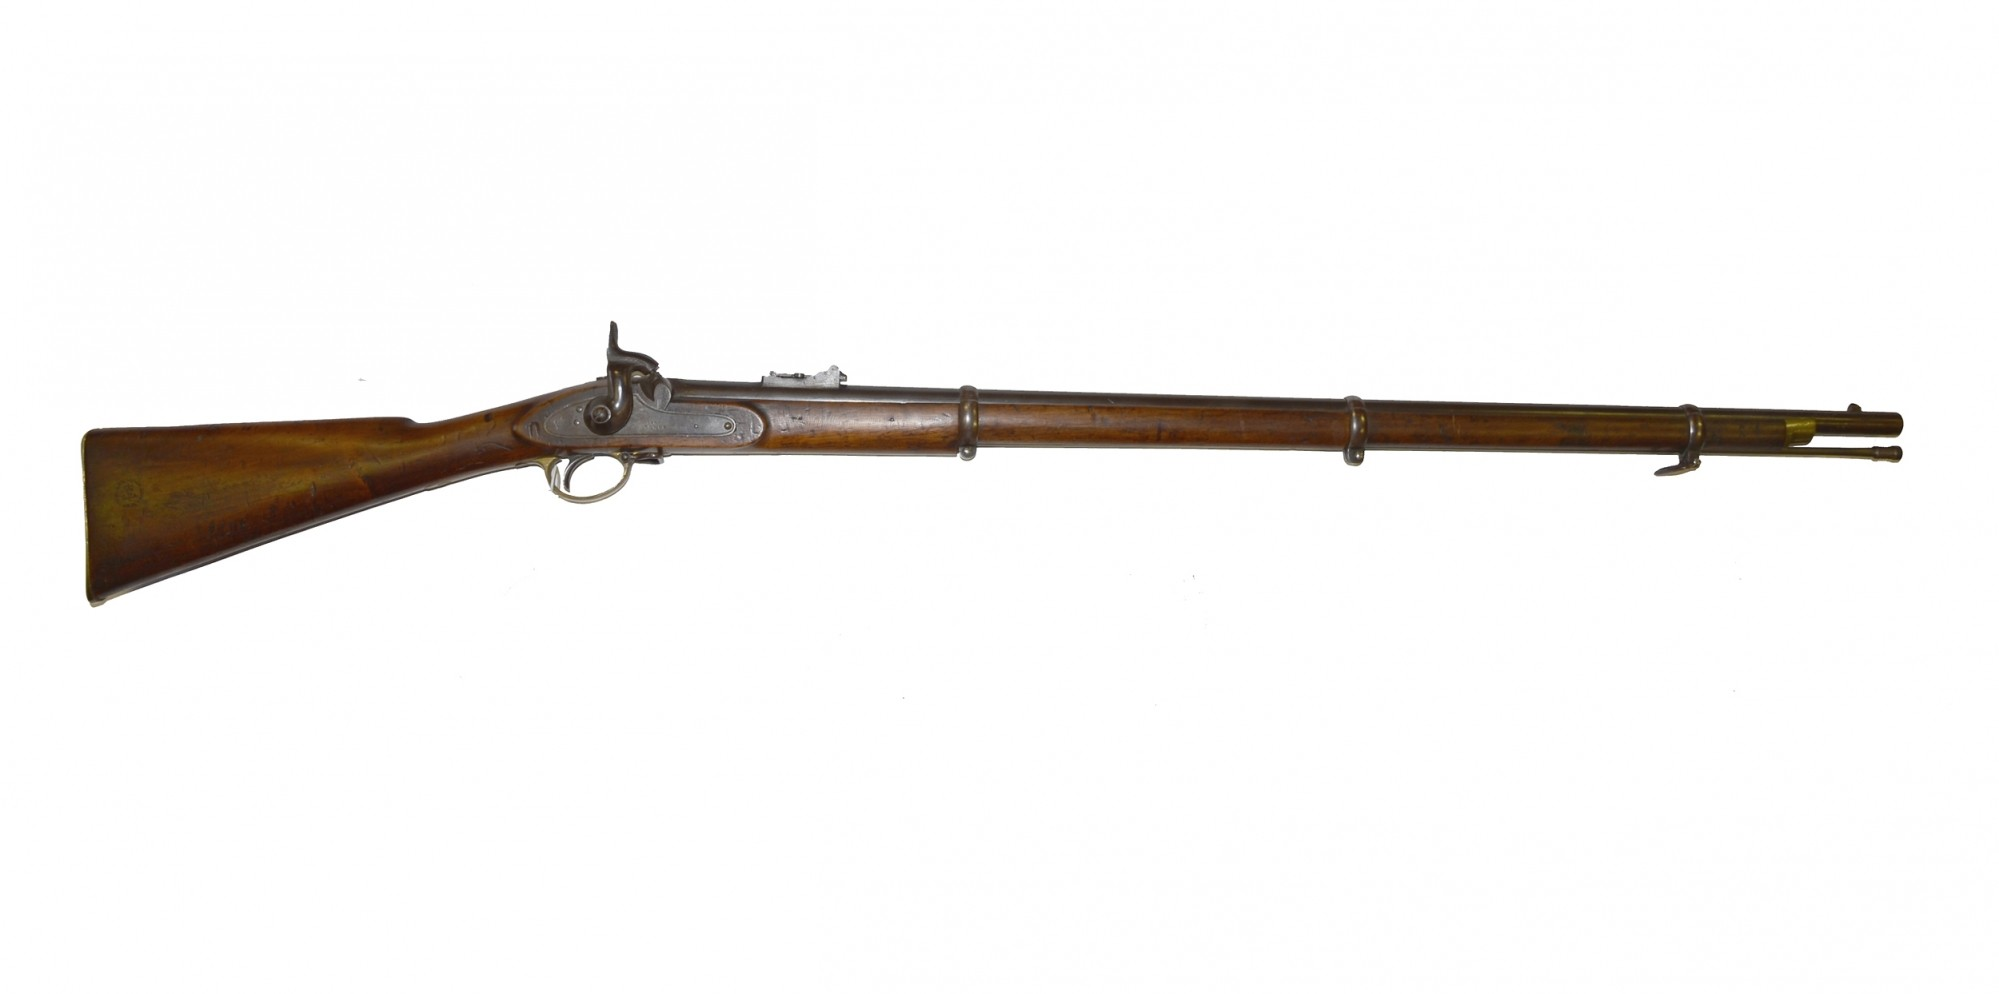 TOWER-MARKED BRITISH PATTERN 1853 ENFIELD PERCUSSION MUSKET